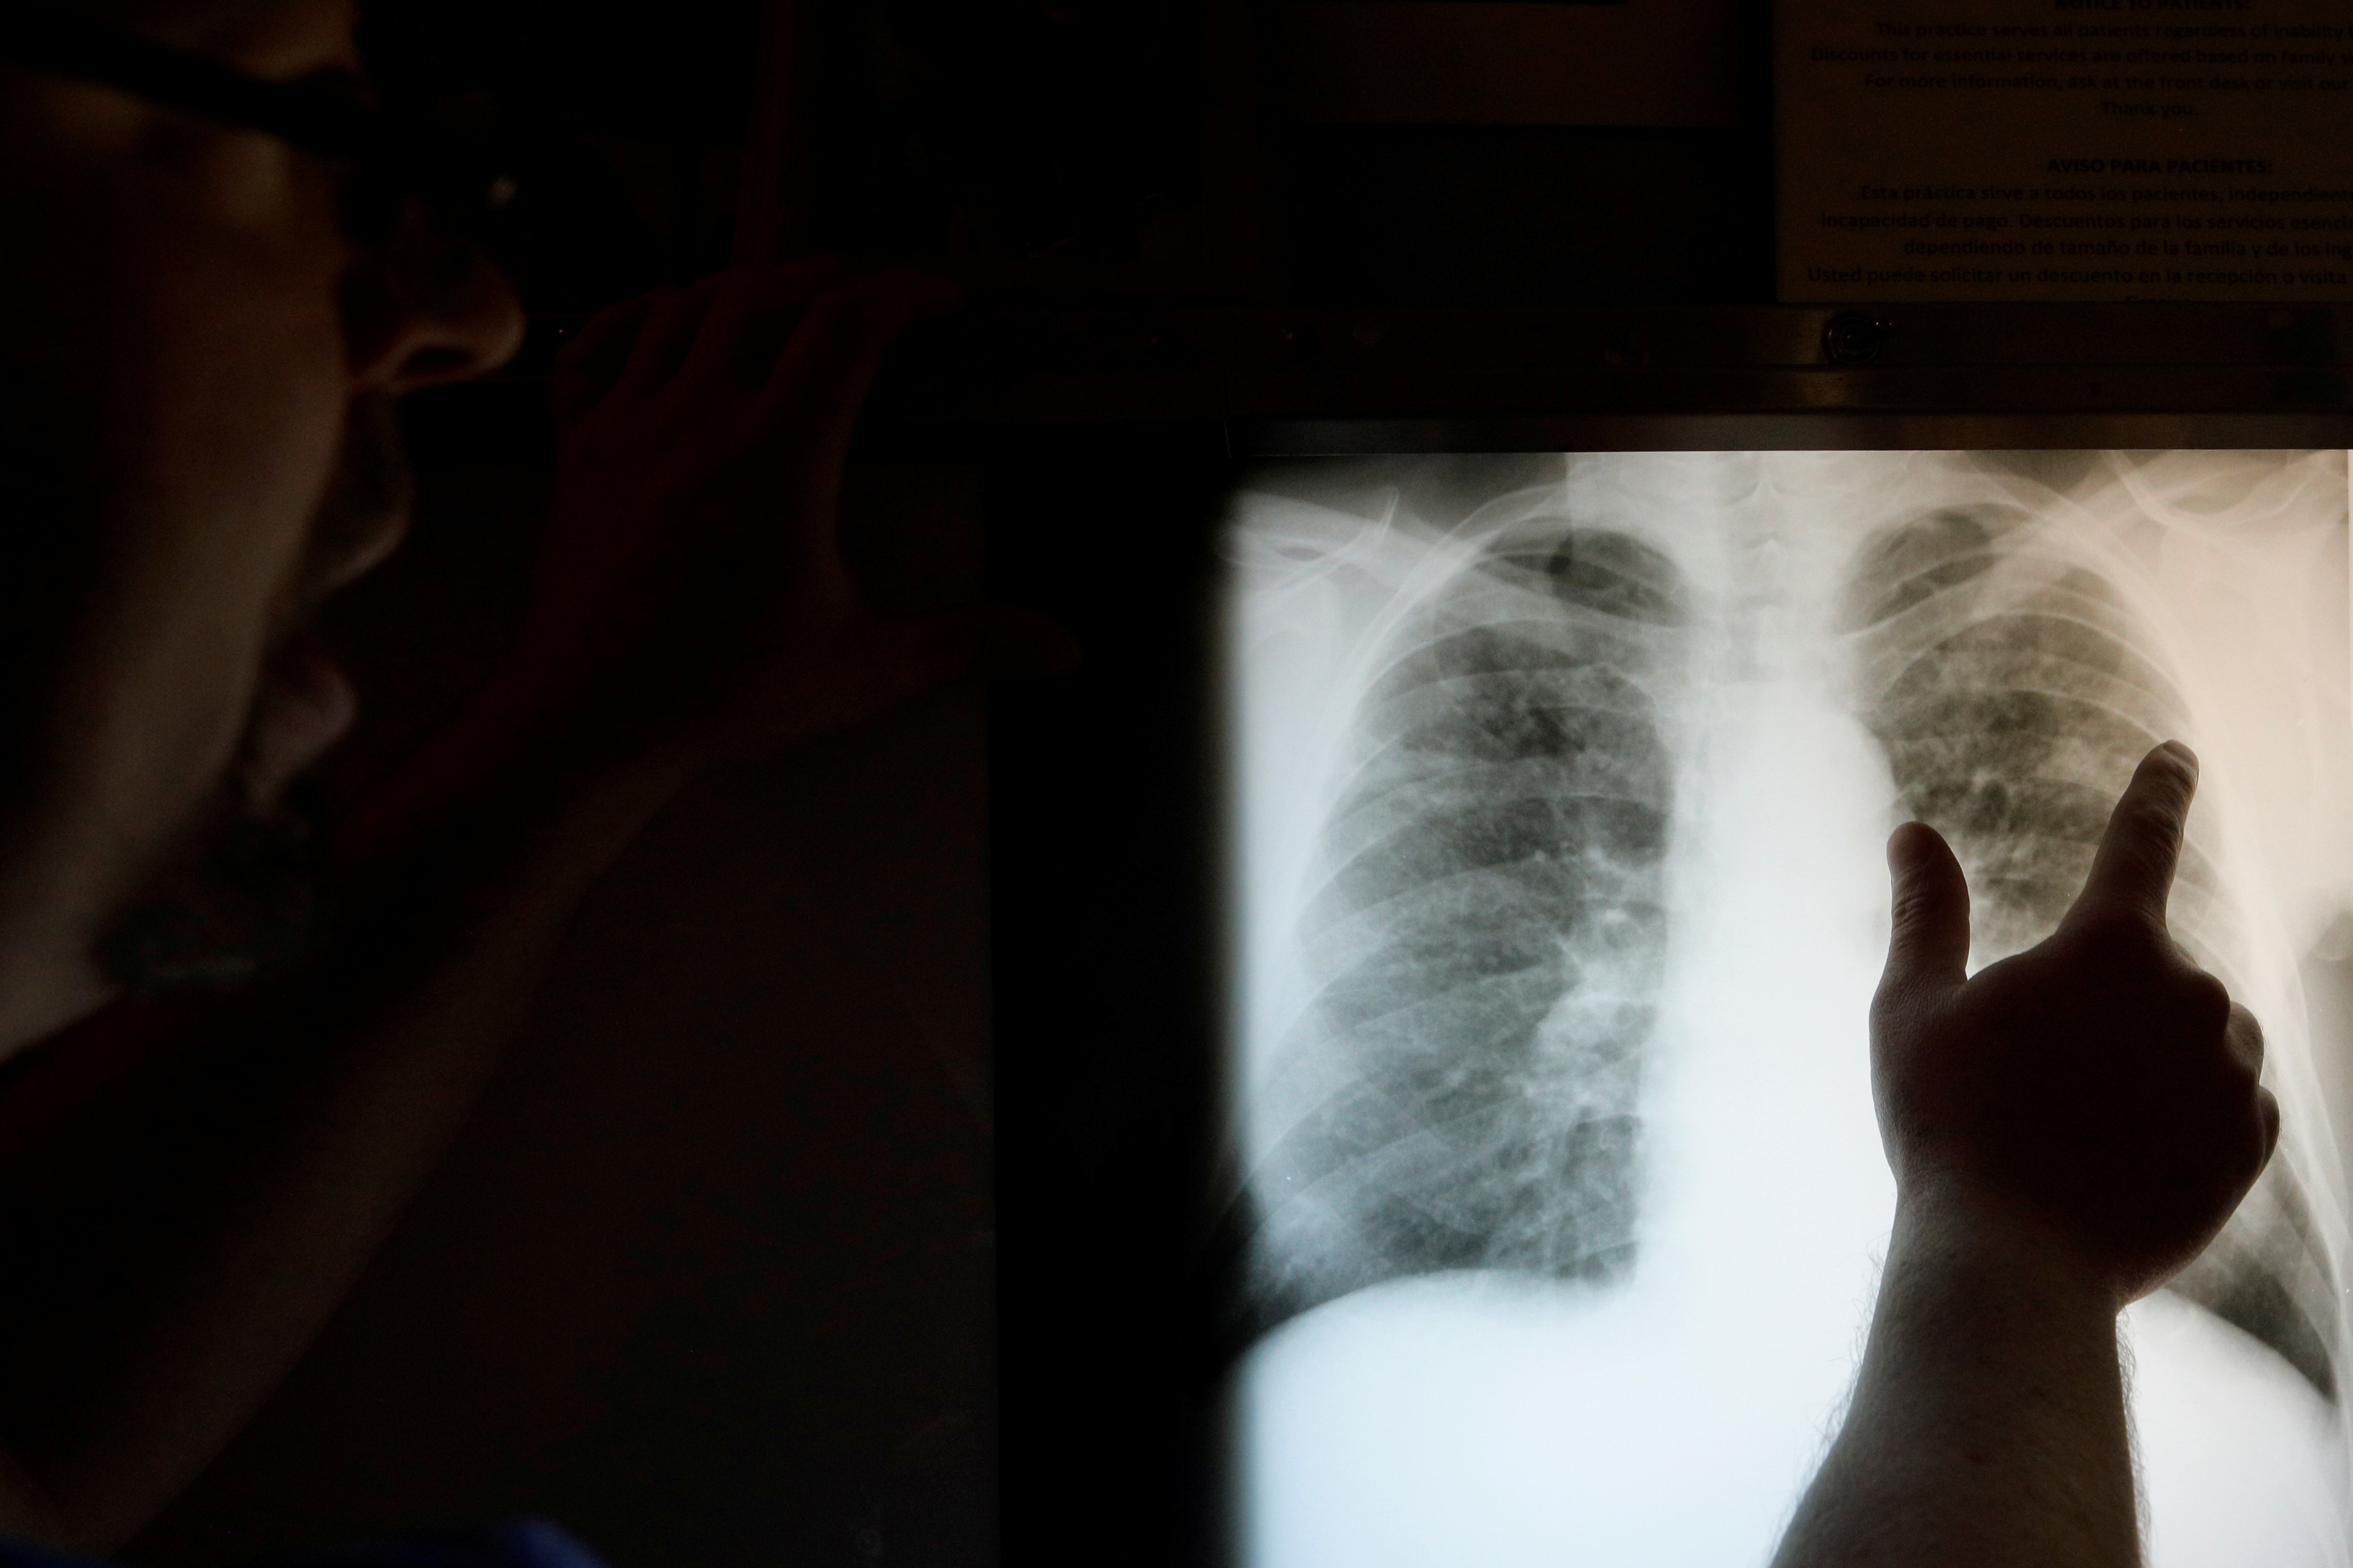 "Radiological technician Mark Davis looks at the chest x-ray of retired coal miner James Marcum, who has complicated black lung disease, at the Stone Mountain Health Services in St. Charles, Virginia, U.S., May 18, 2018. According to Davis, there are no digital x-ray machines in the county, except at a veterinary clinic, so the x-ray film has to be sent to a radiologist to be read, adding weeks to the process of diagnosis. REUTERS/Brian Snyder  SEARCH ""BLACK LUNG"" FOR THIS STORY. SEARCH ""WIDER IMAGE"" FOR ALL STORIES. - RC1BCD144F70"